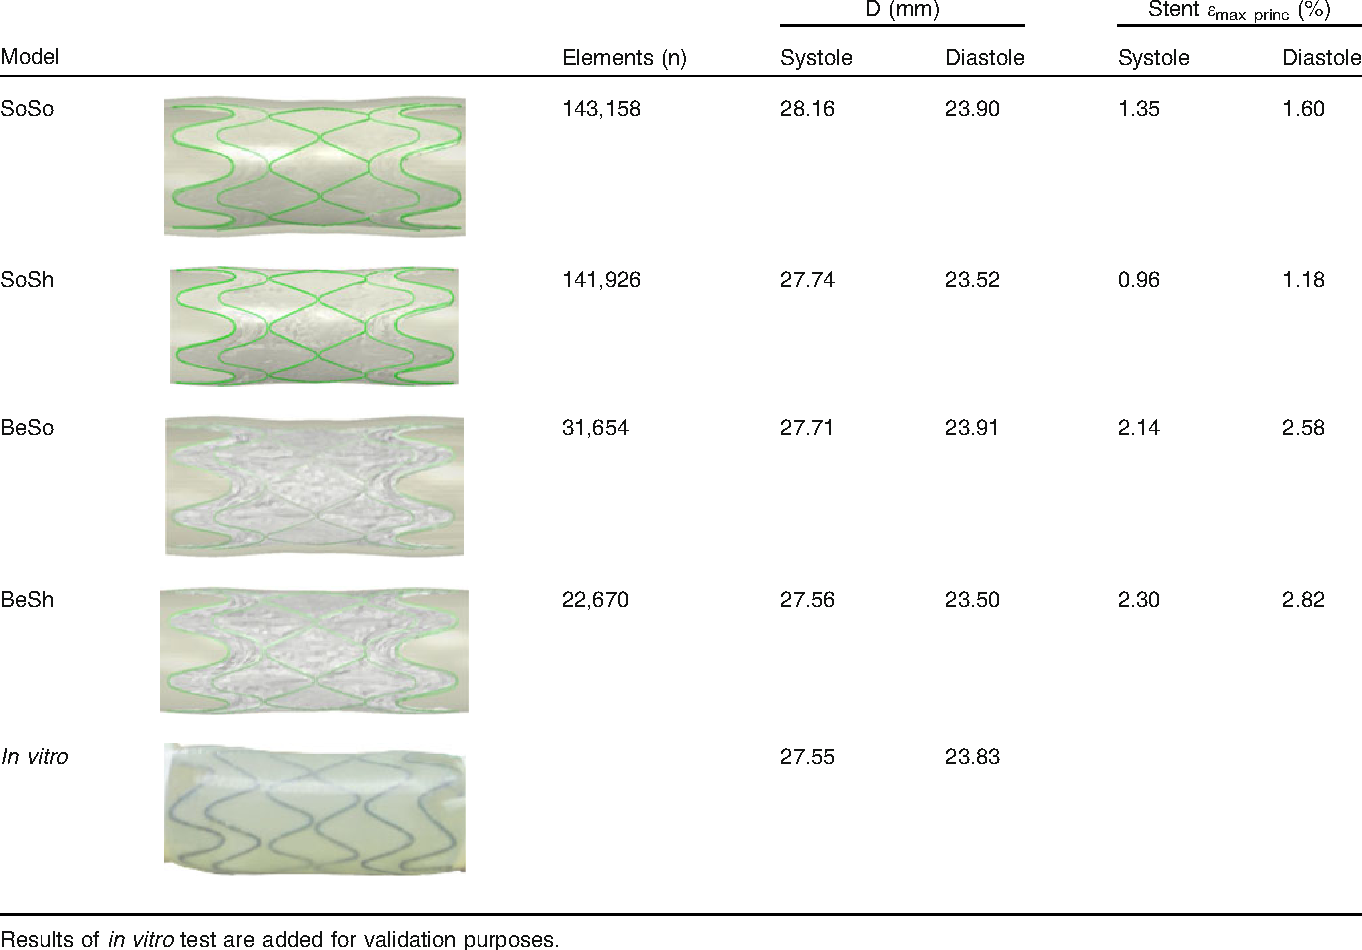 TABLE 2. Results of FE simulations performed in a simplified implantation site.